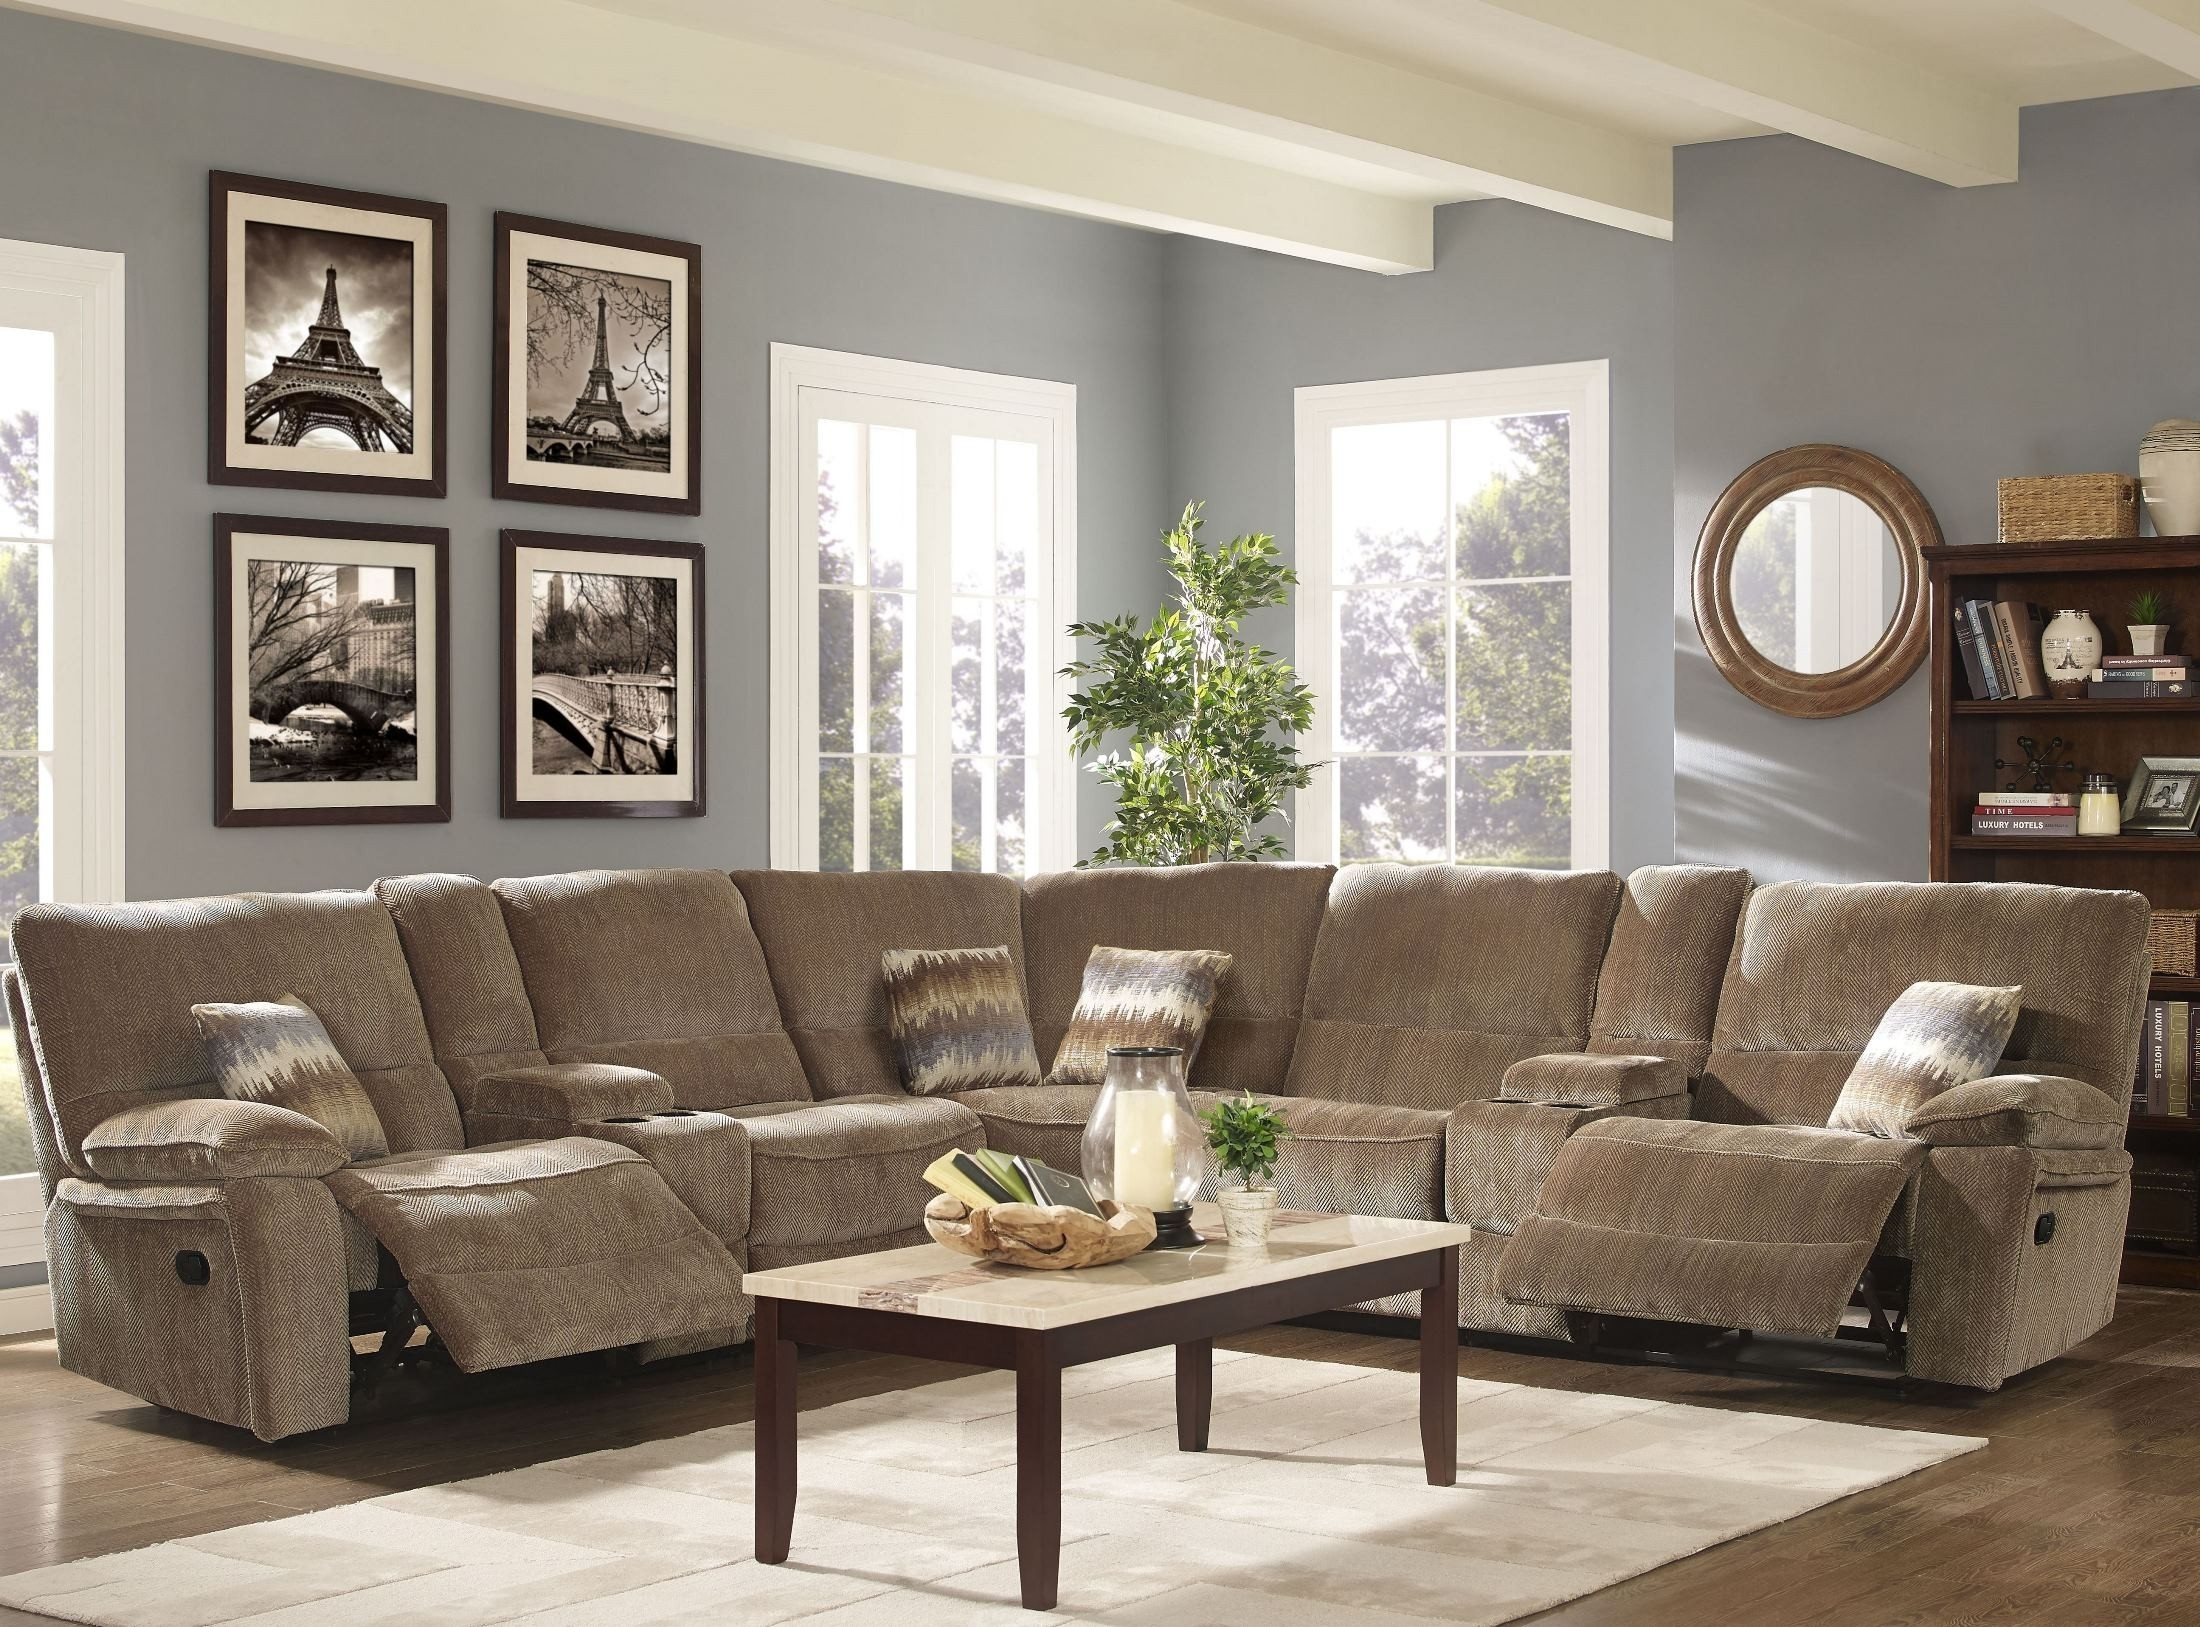 Ranger Bravo Sandalwood Power Reclining Sectional From New Classic Intended For Turdur 2 Piece Sectionals With Laf Loveseat (View 15 of 25)